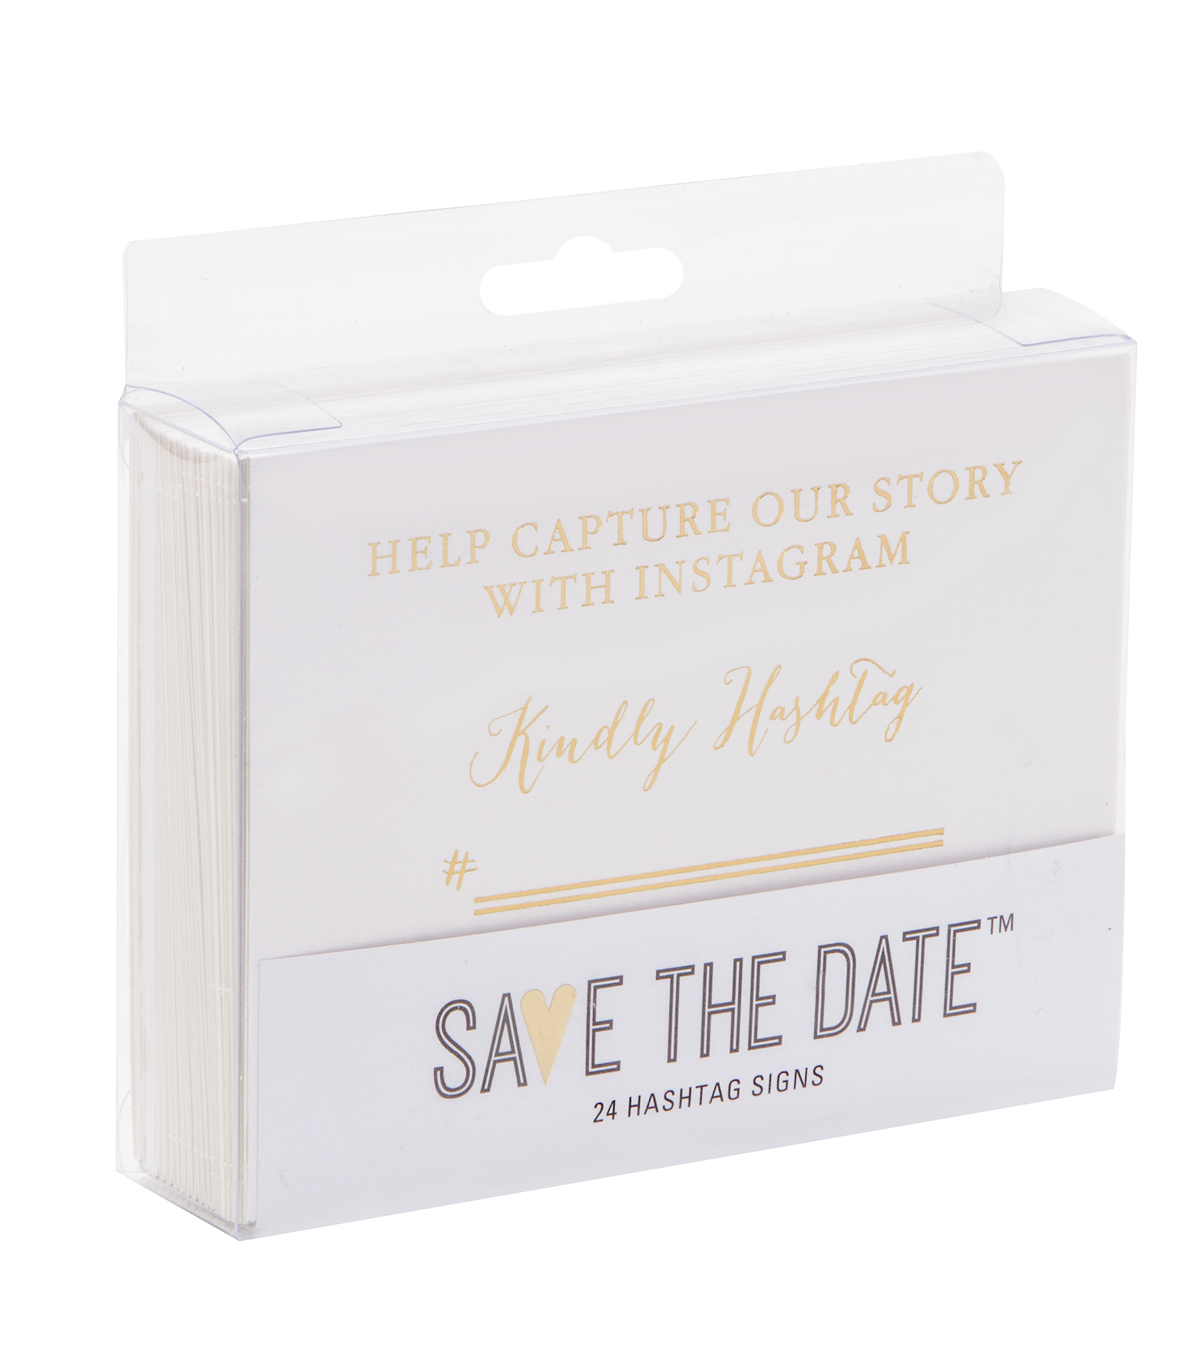 Save The Date™ Instagram Wedding Sign-Gold Kindly Hashtag